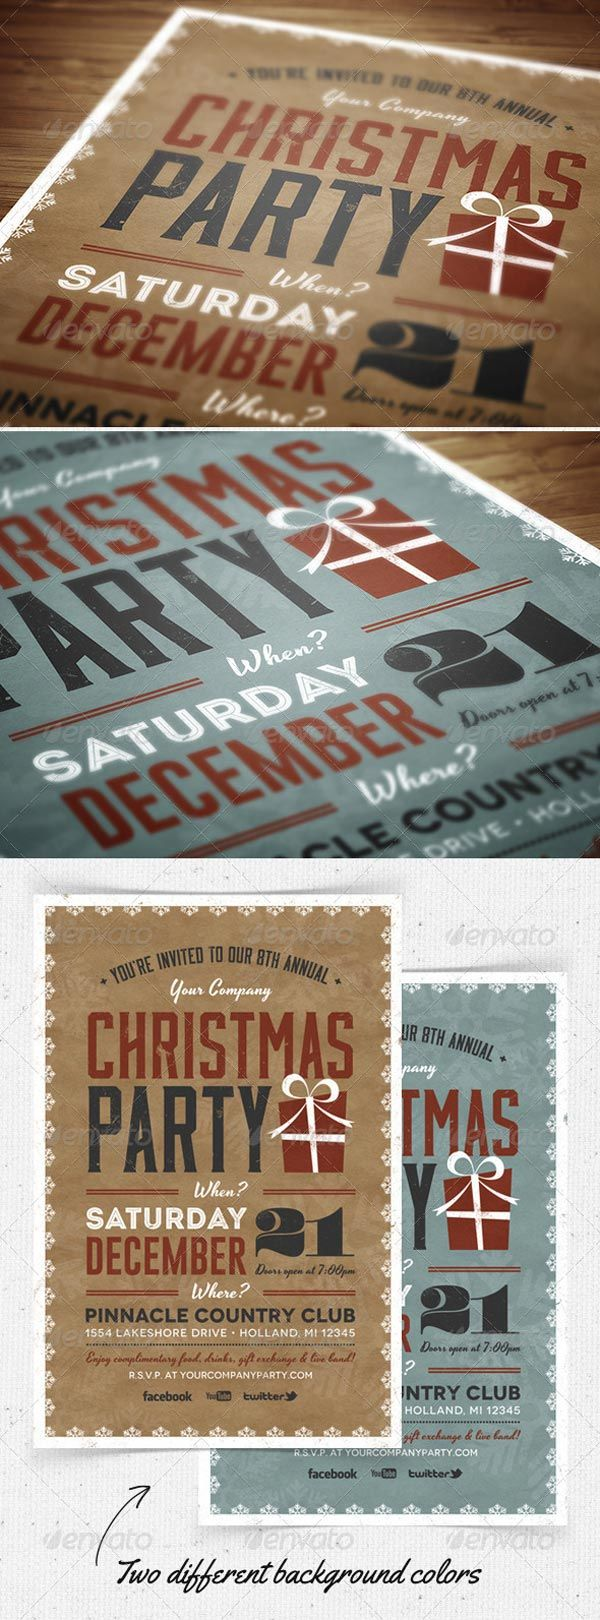 Christmas Party Flyer and Invitation Print Templates